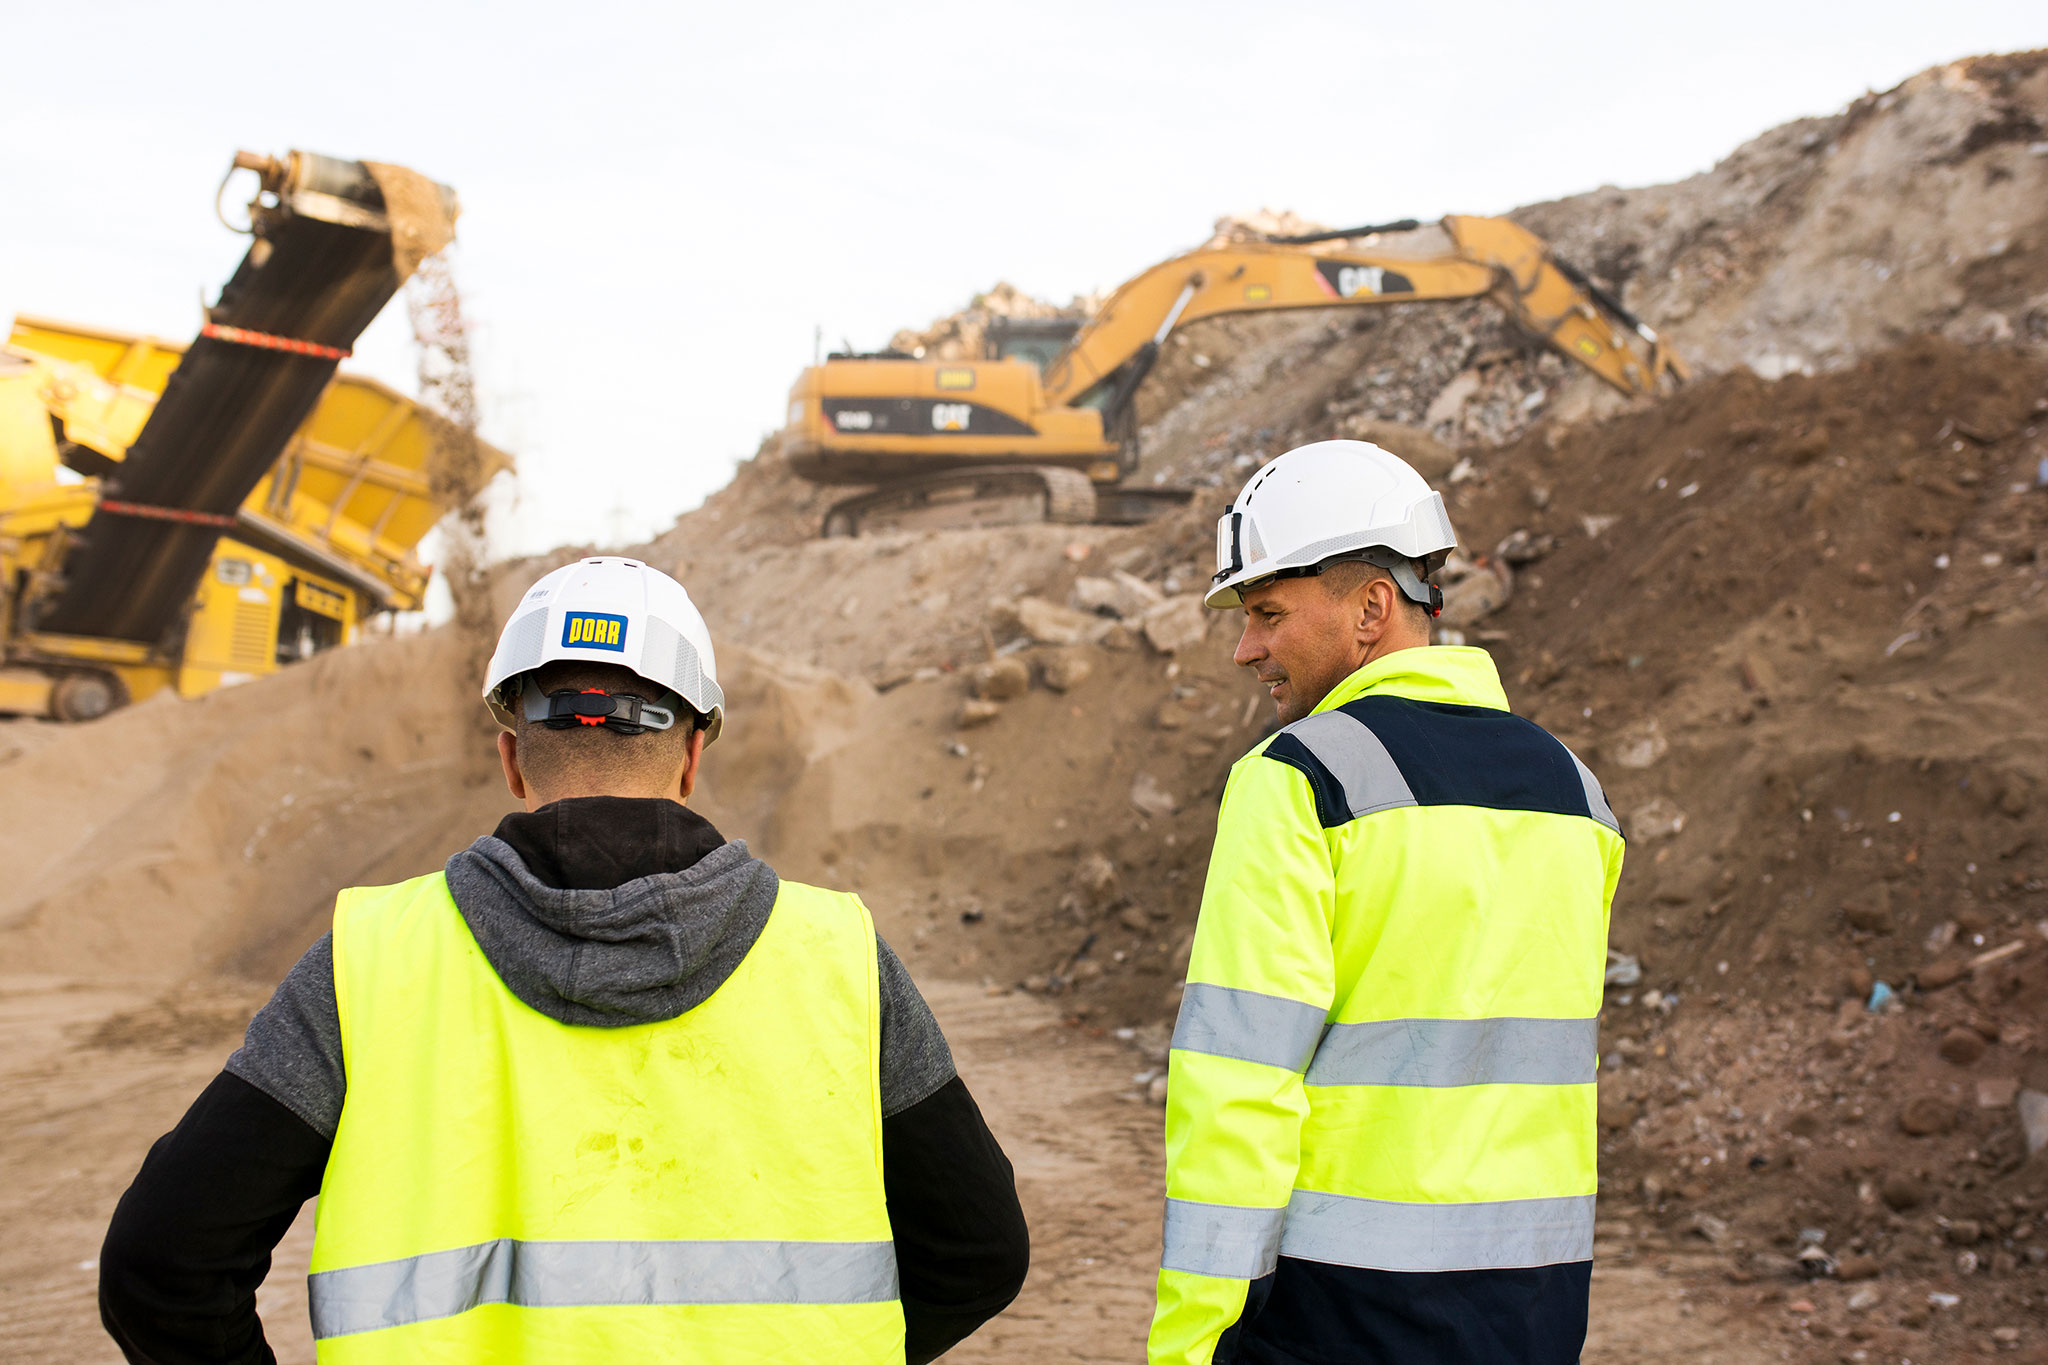 Photo: two employees in conversation; behind them, mountains of recycled construction waste, a conveyor belt and a track excavator at work